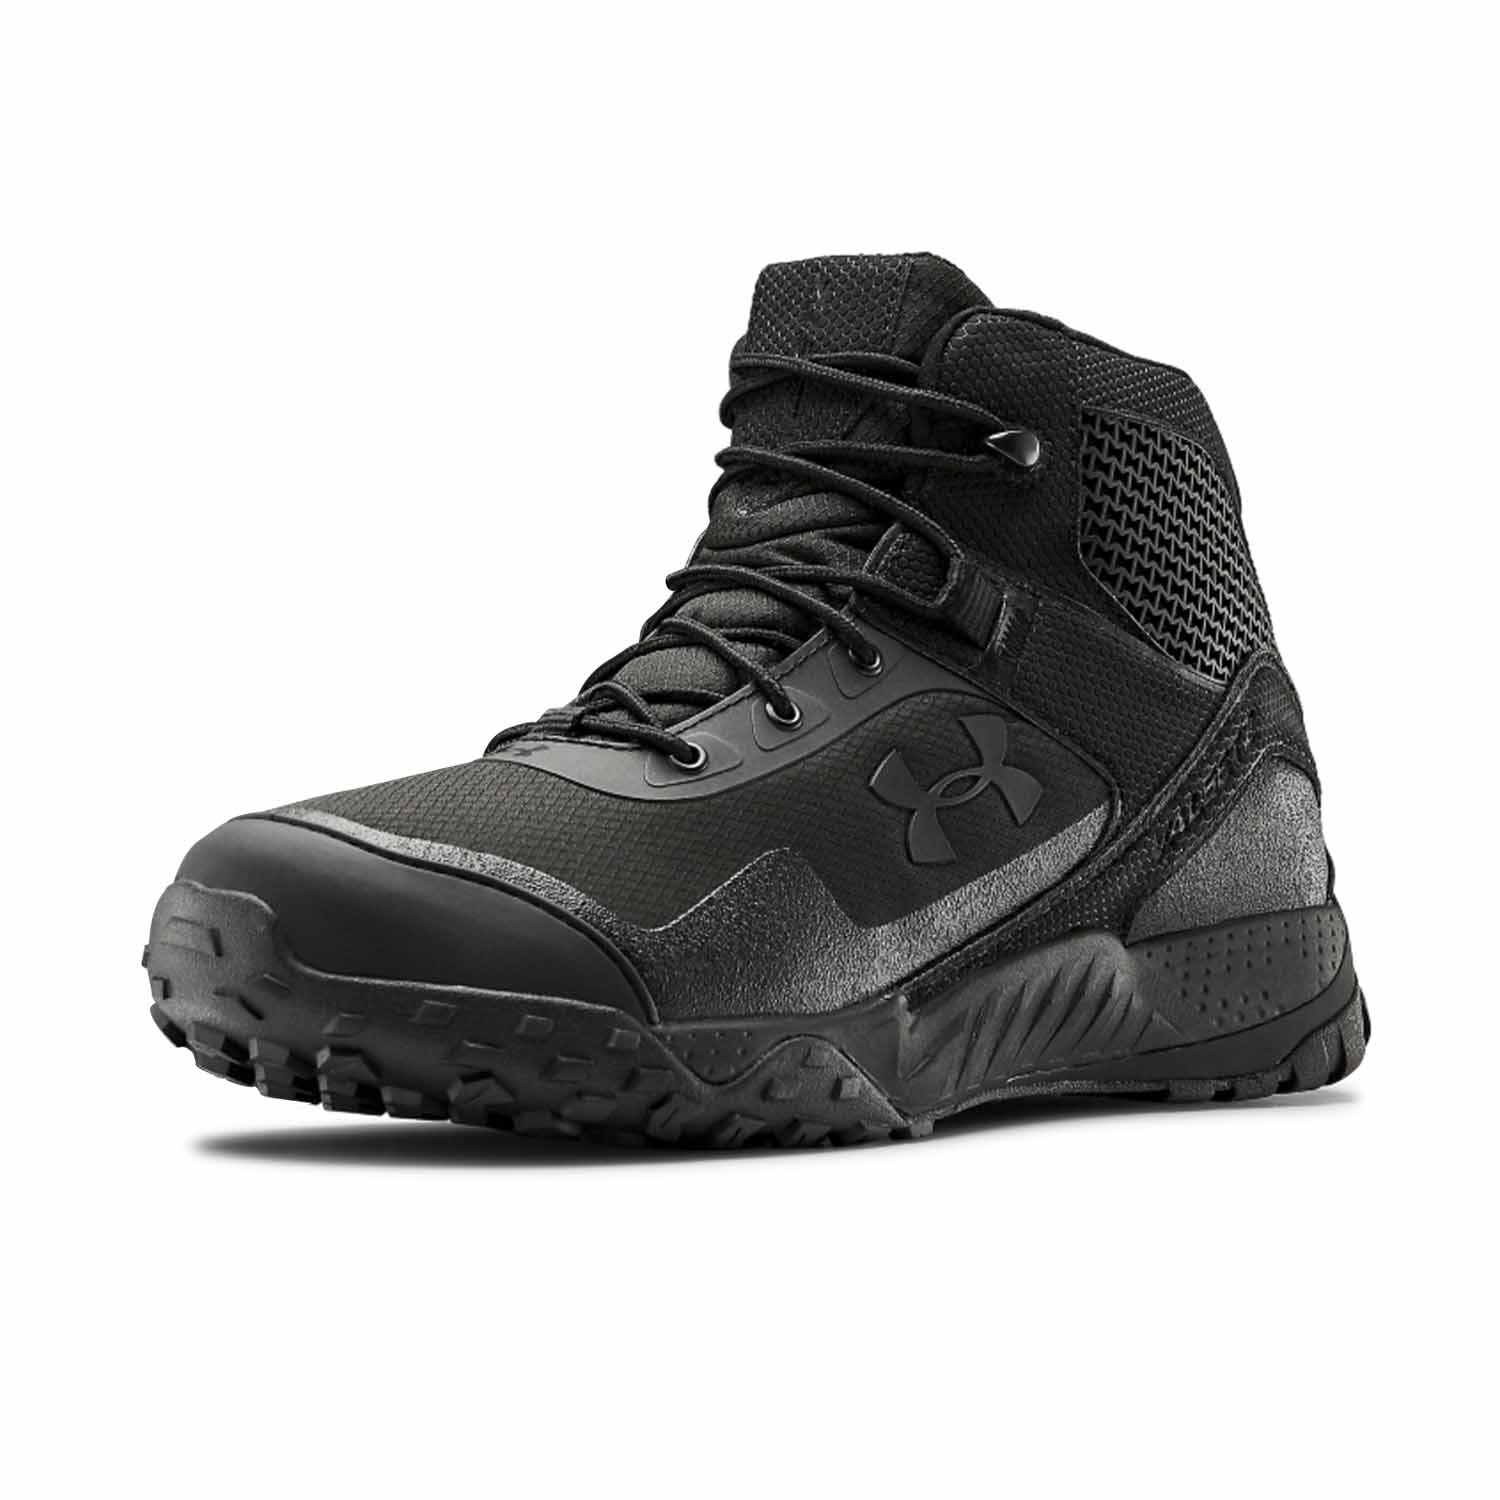 "Under Armour Valsetz RTS 5"" Boot"